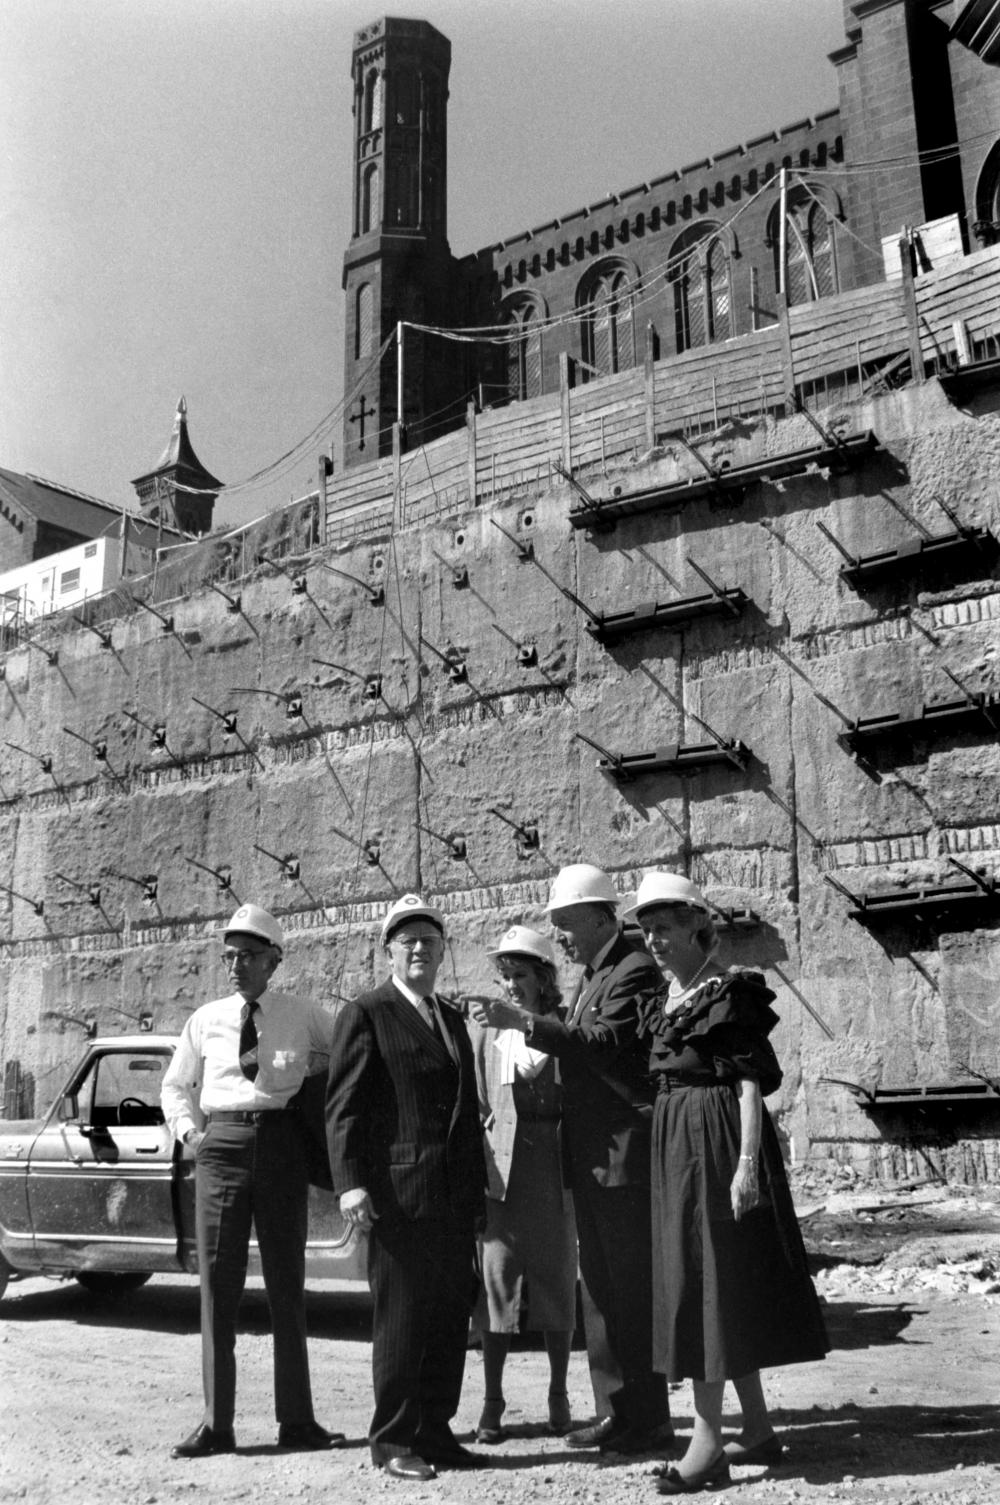 People in hard hats stand in front of construction.